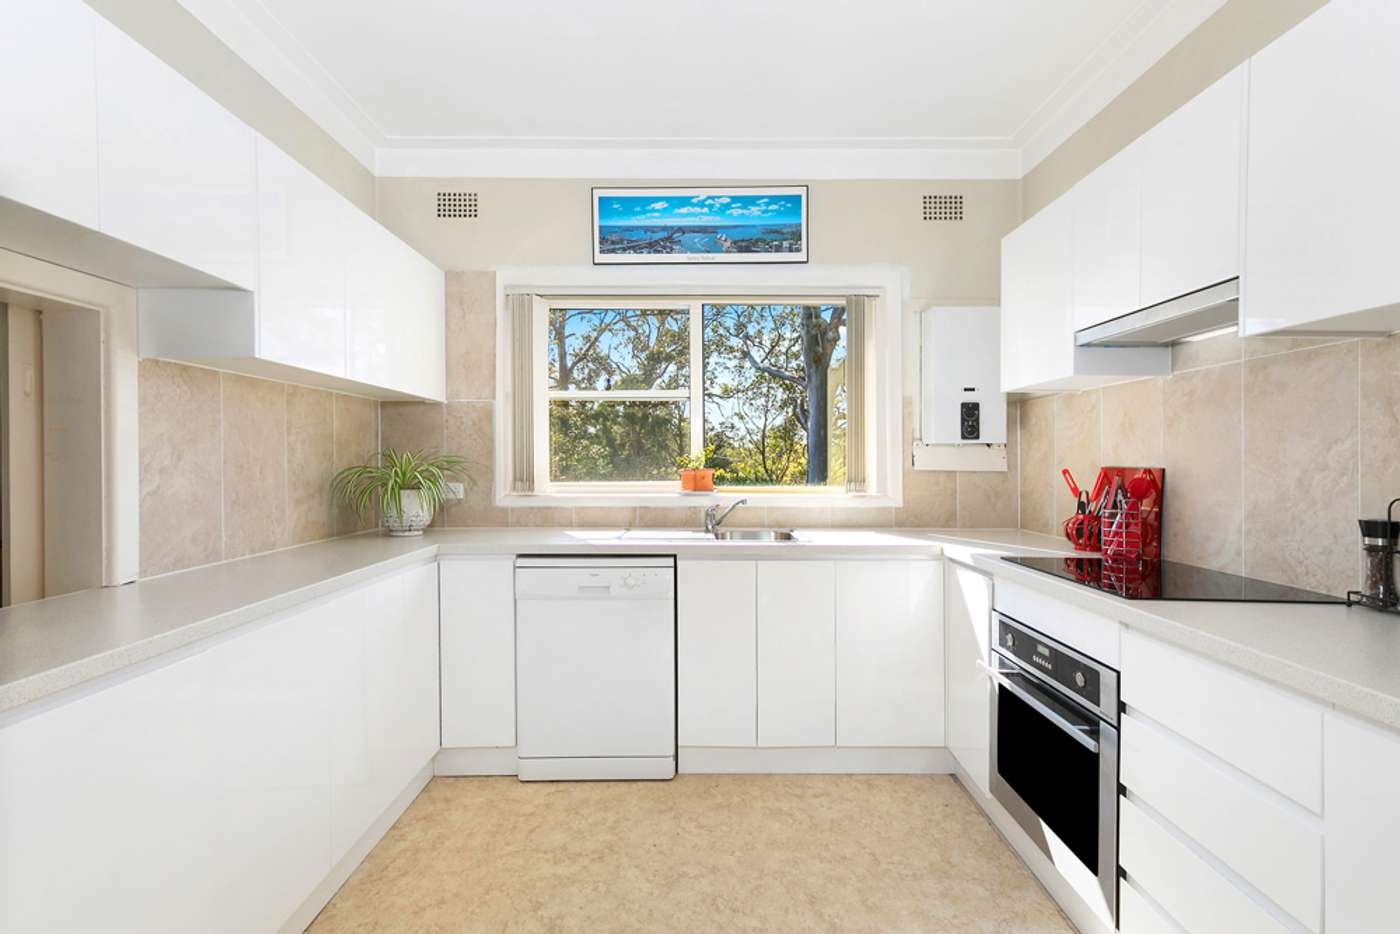 Main view of Homely apartment listing, 2/2 Mandalay Place, Pymble NSW 2073